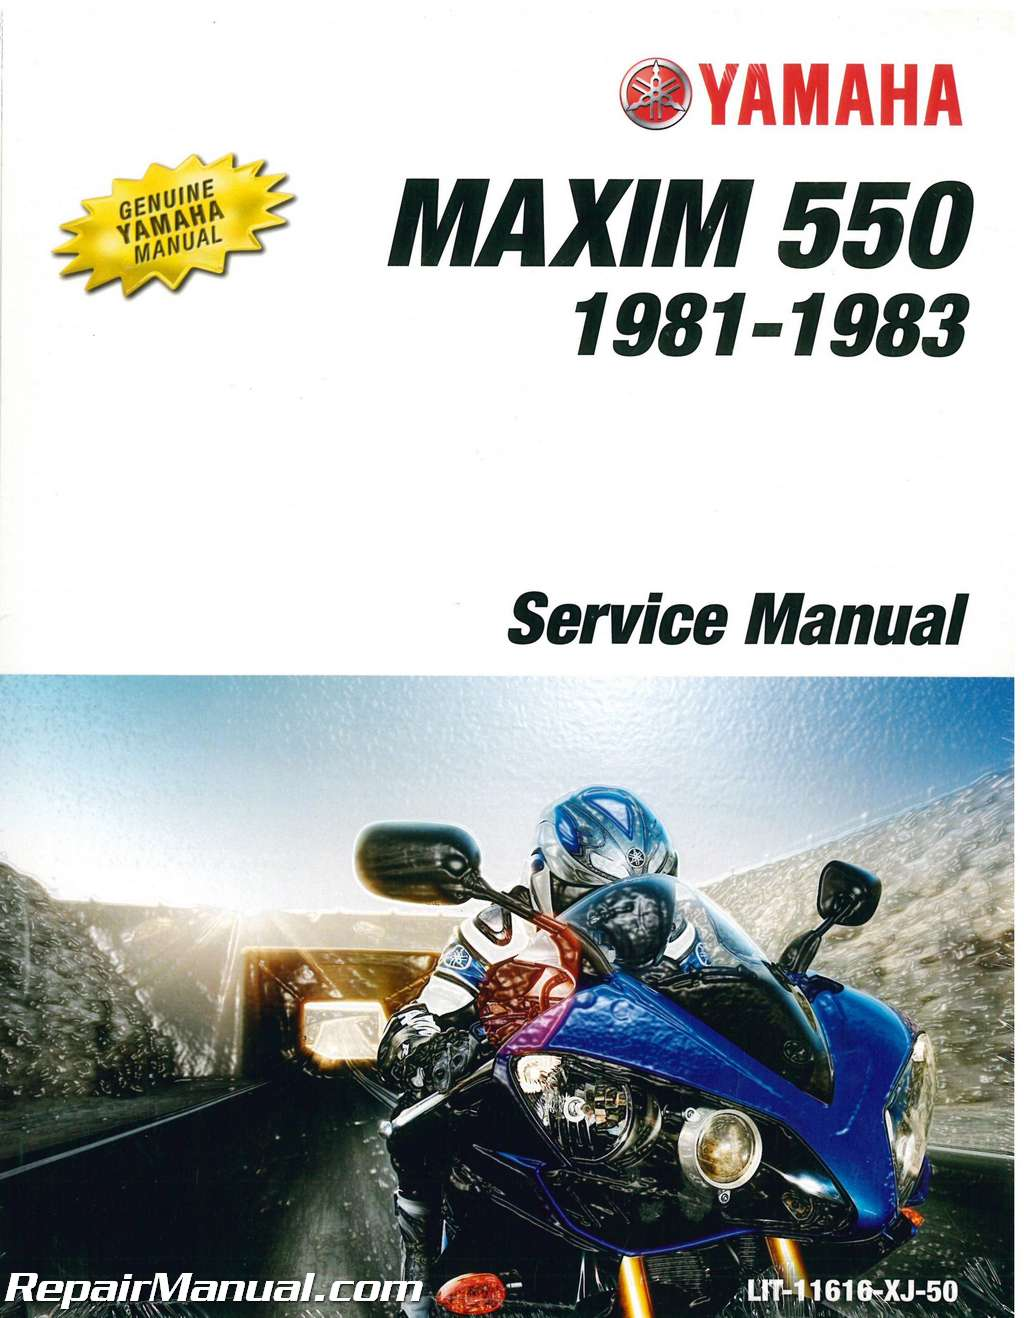 1981 1983 yamaha xj550 seca and maxim motorcycle service manual rh repairmanual com yamaha xj550 workshop manual yamaha xj550 workshop manual